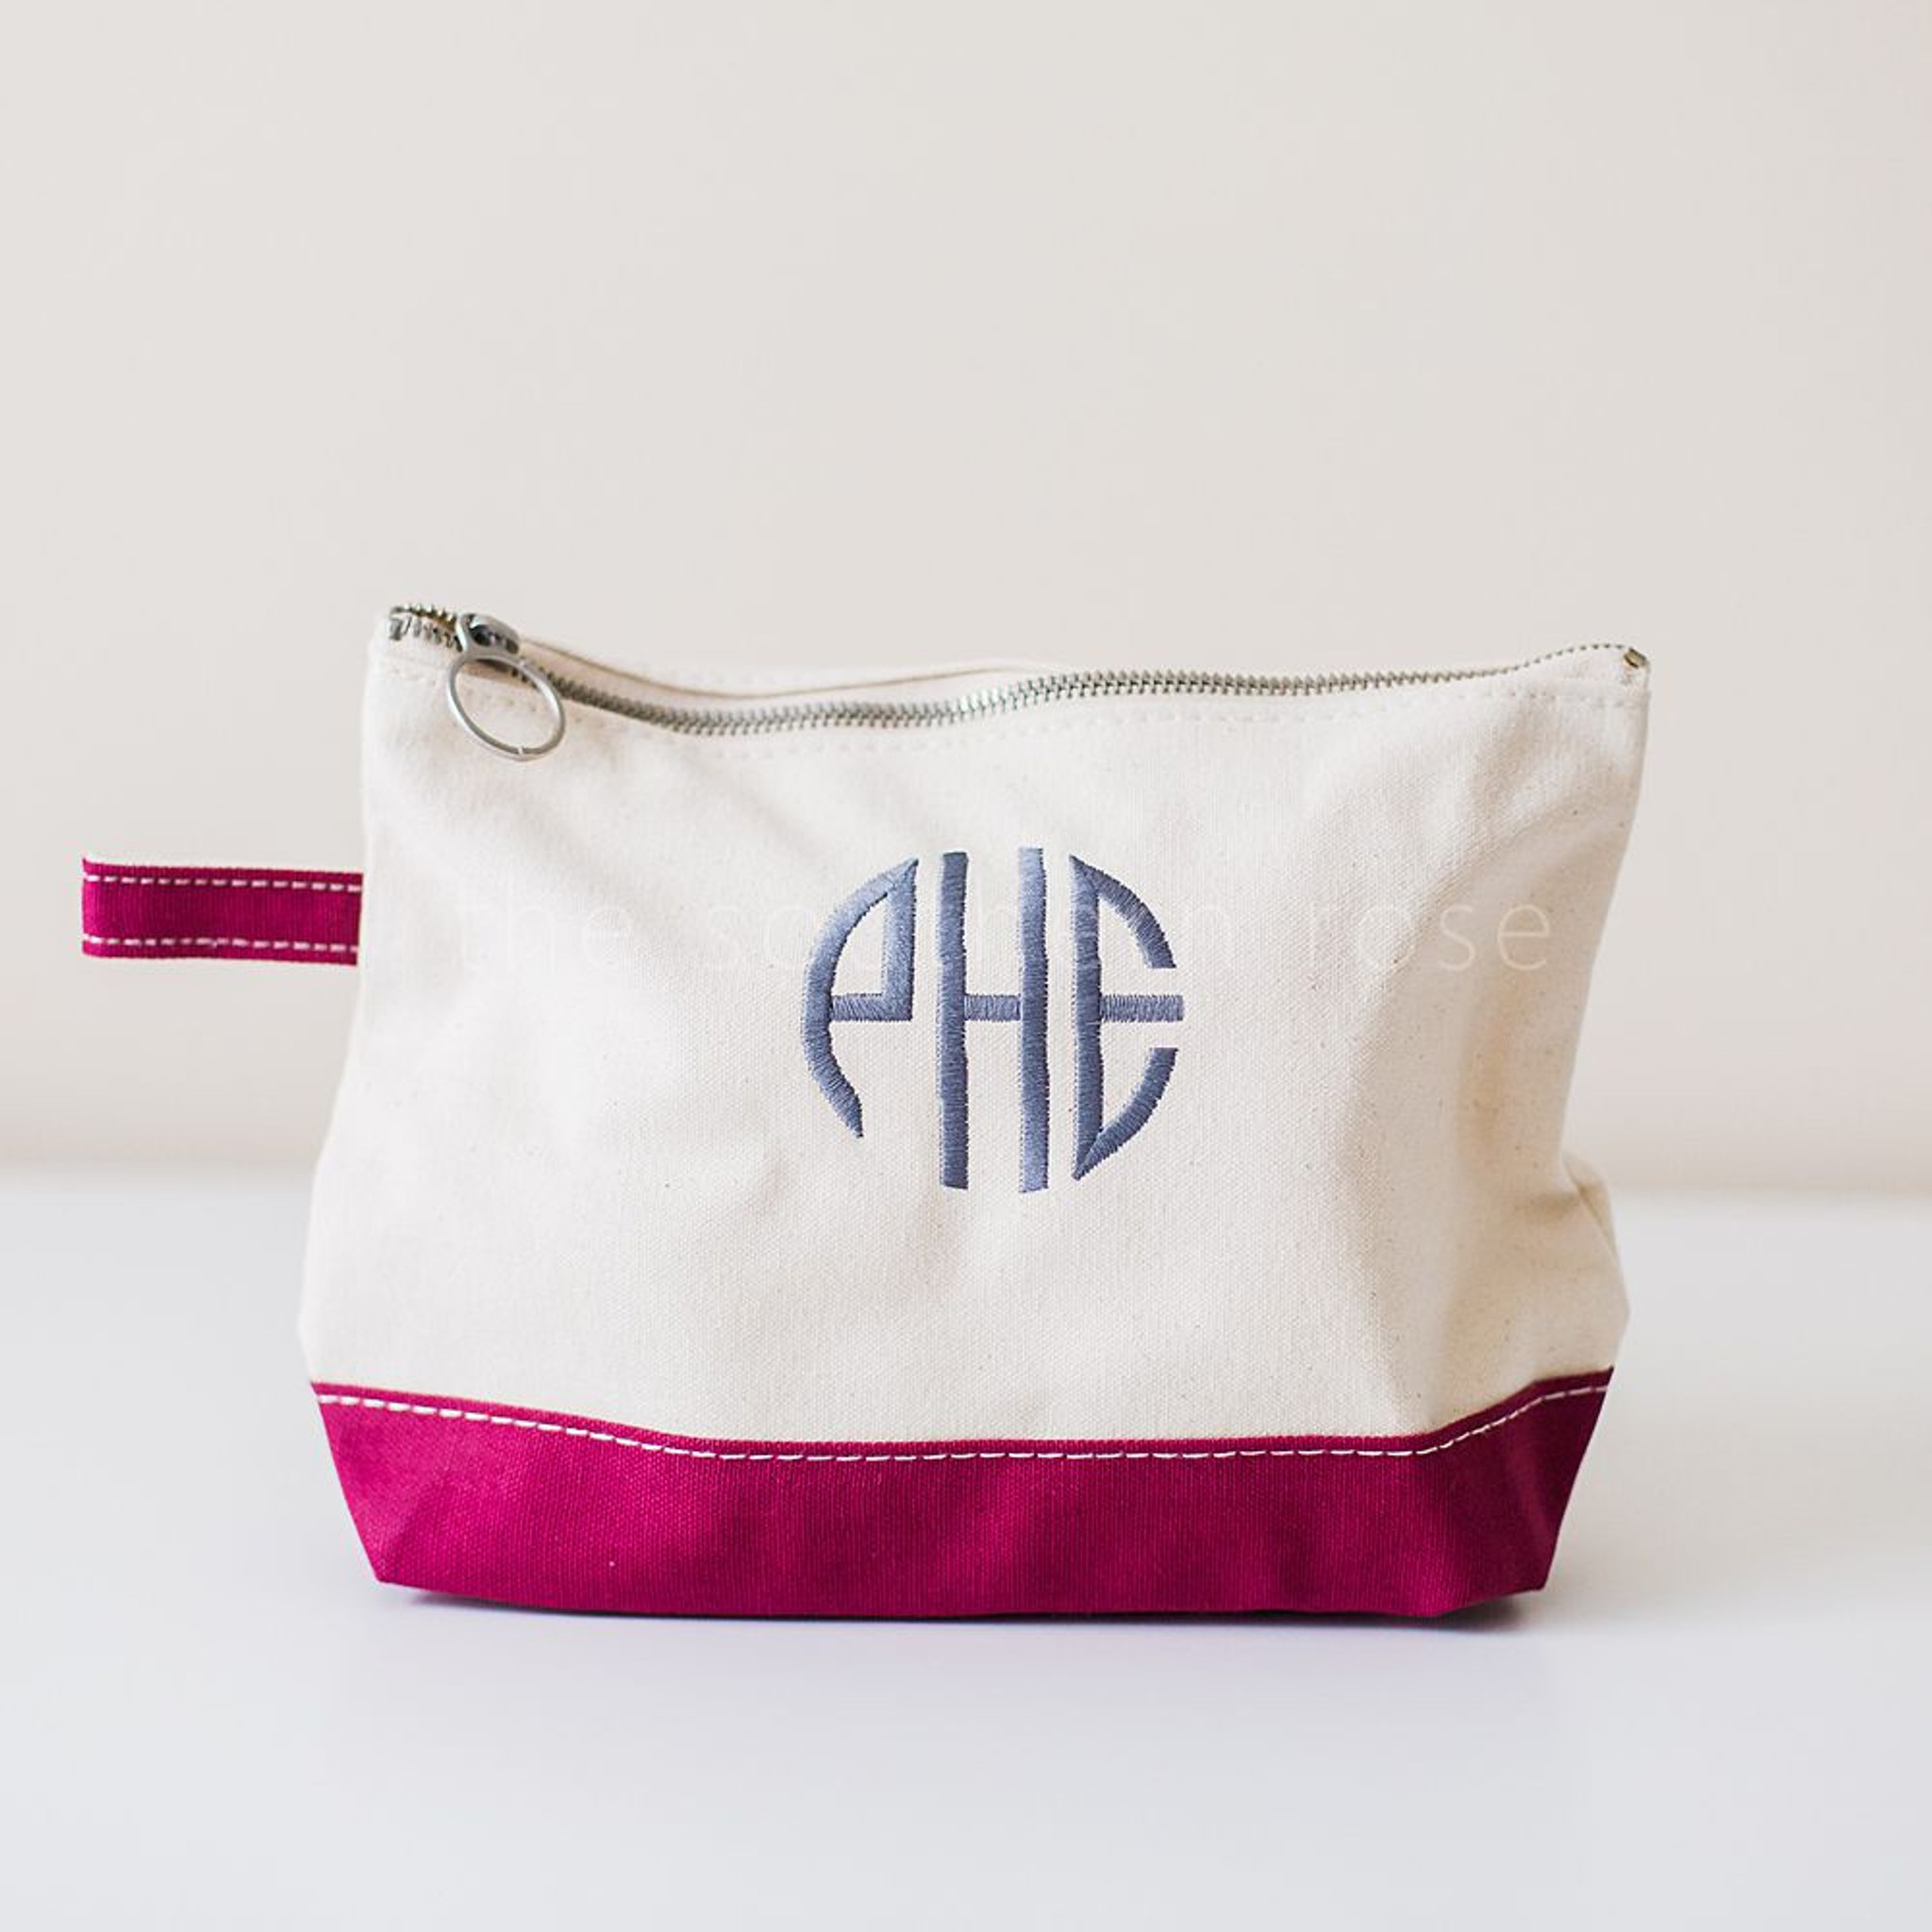 Personalized Cosmetic Bag - Maroon